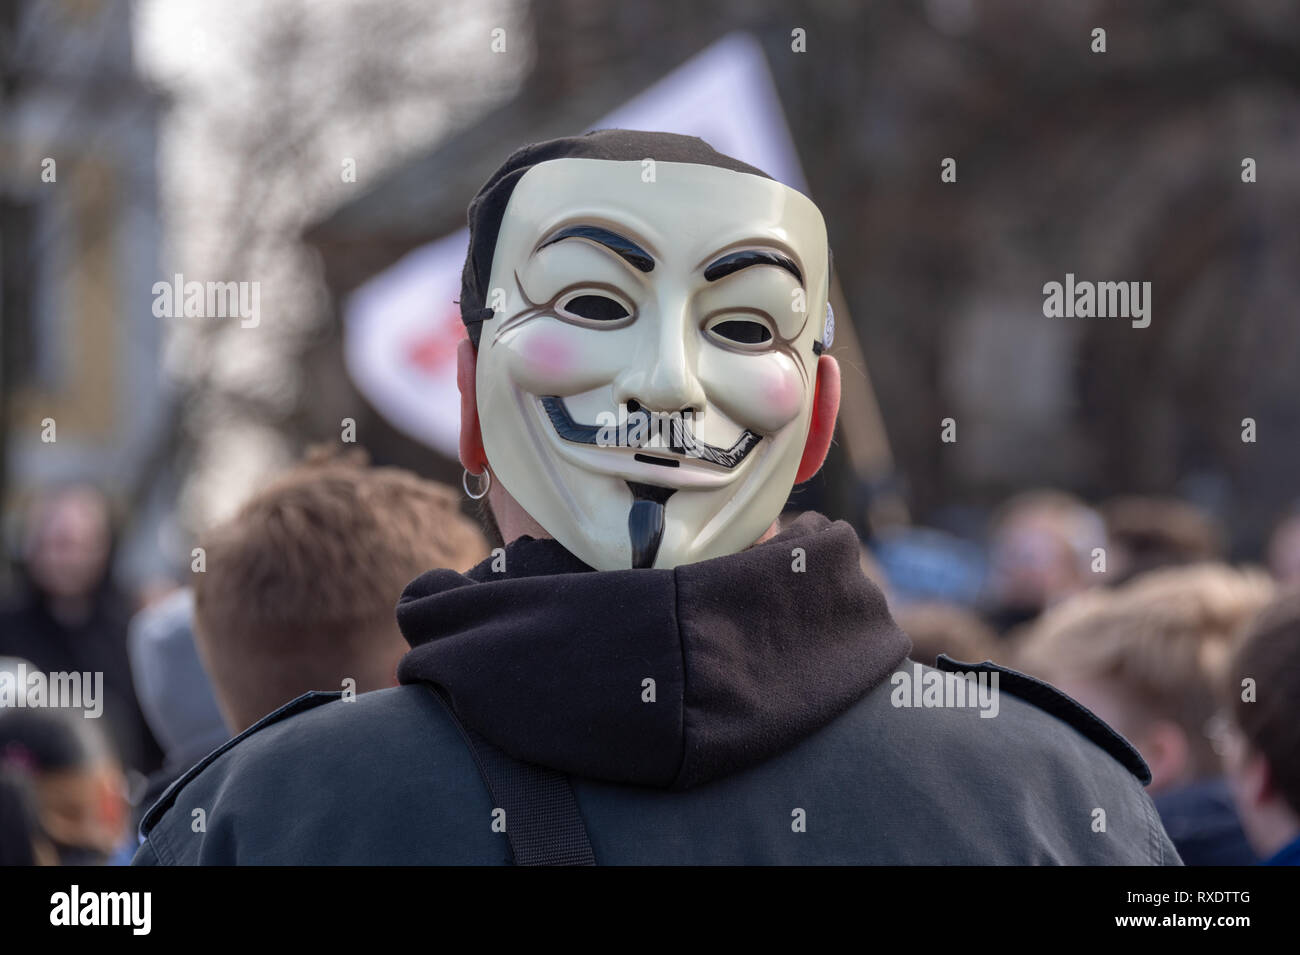 Magdeburg, Germany - 09th March, 2019: : A demonstrator wears an anonymous mask. The man took part in a demonstration in Magdeburg by 1000 mostly young people against EU copyright reform. The demonstrators fear censorship of the Internet if Article 13 is implemented. Credit: Mattis Kaminer/Alamy Live News Stock Photo